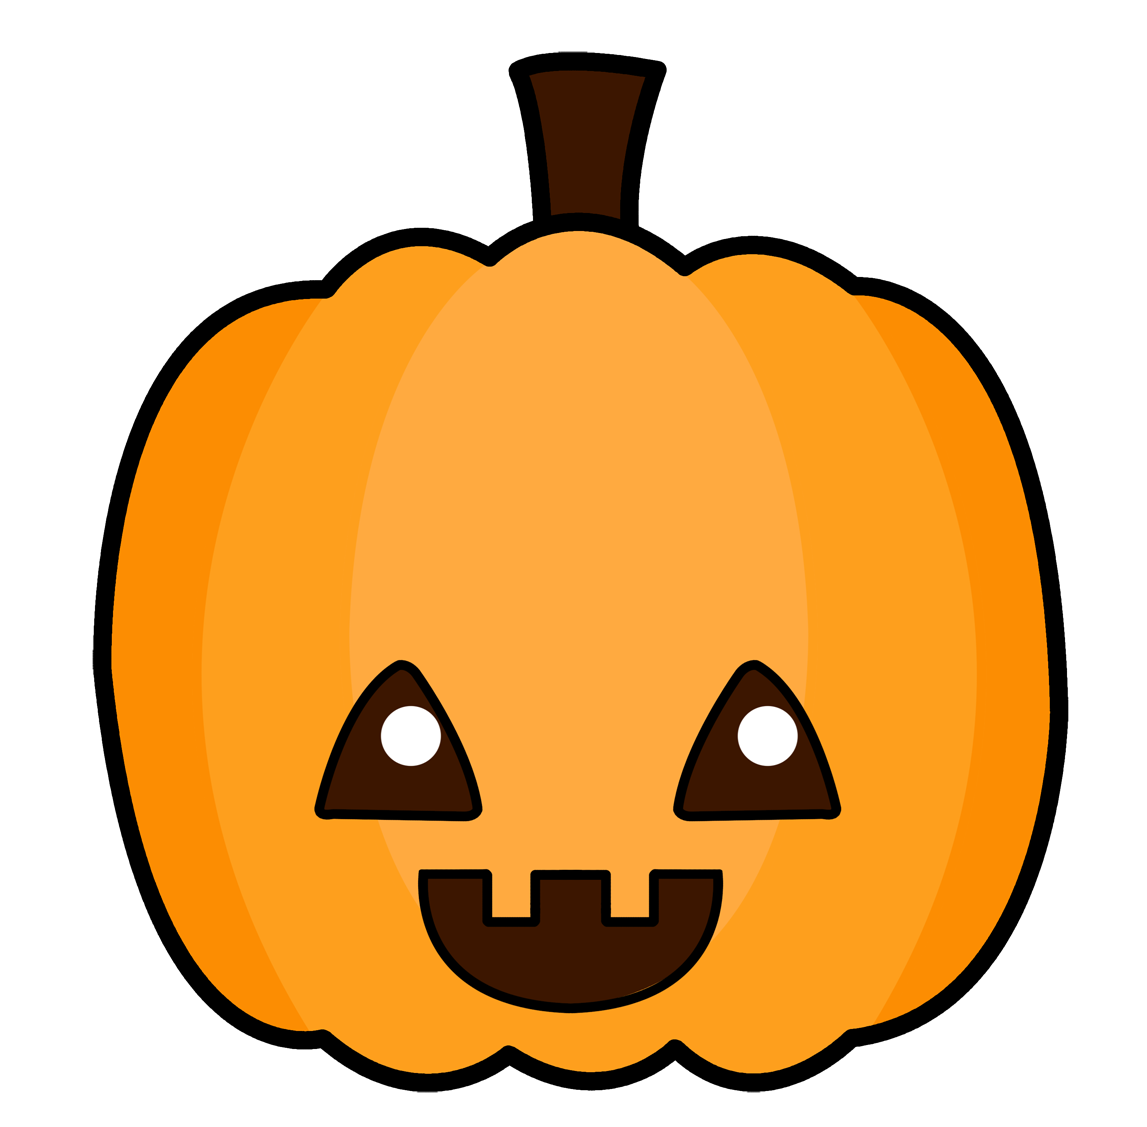 Jackolantern Images - Cliparts.co